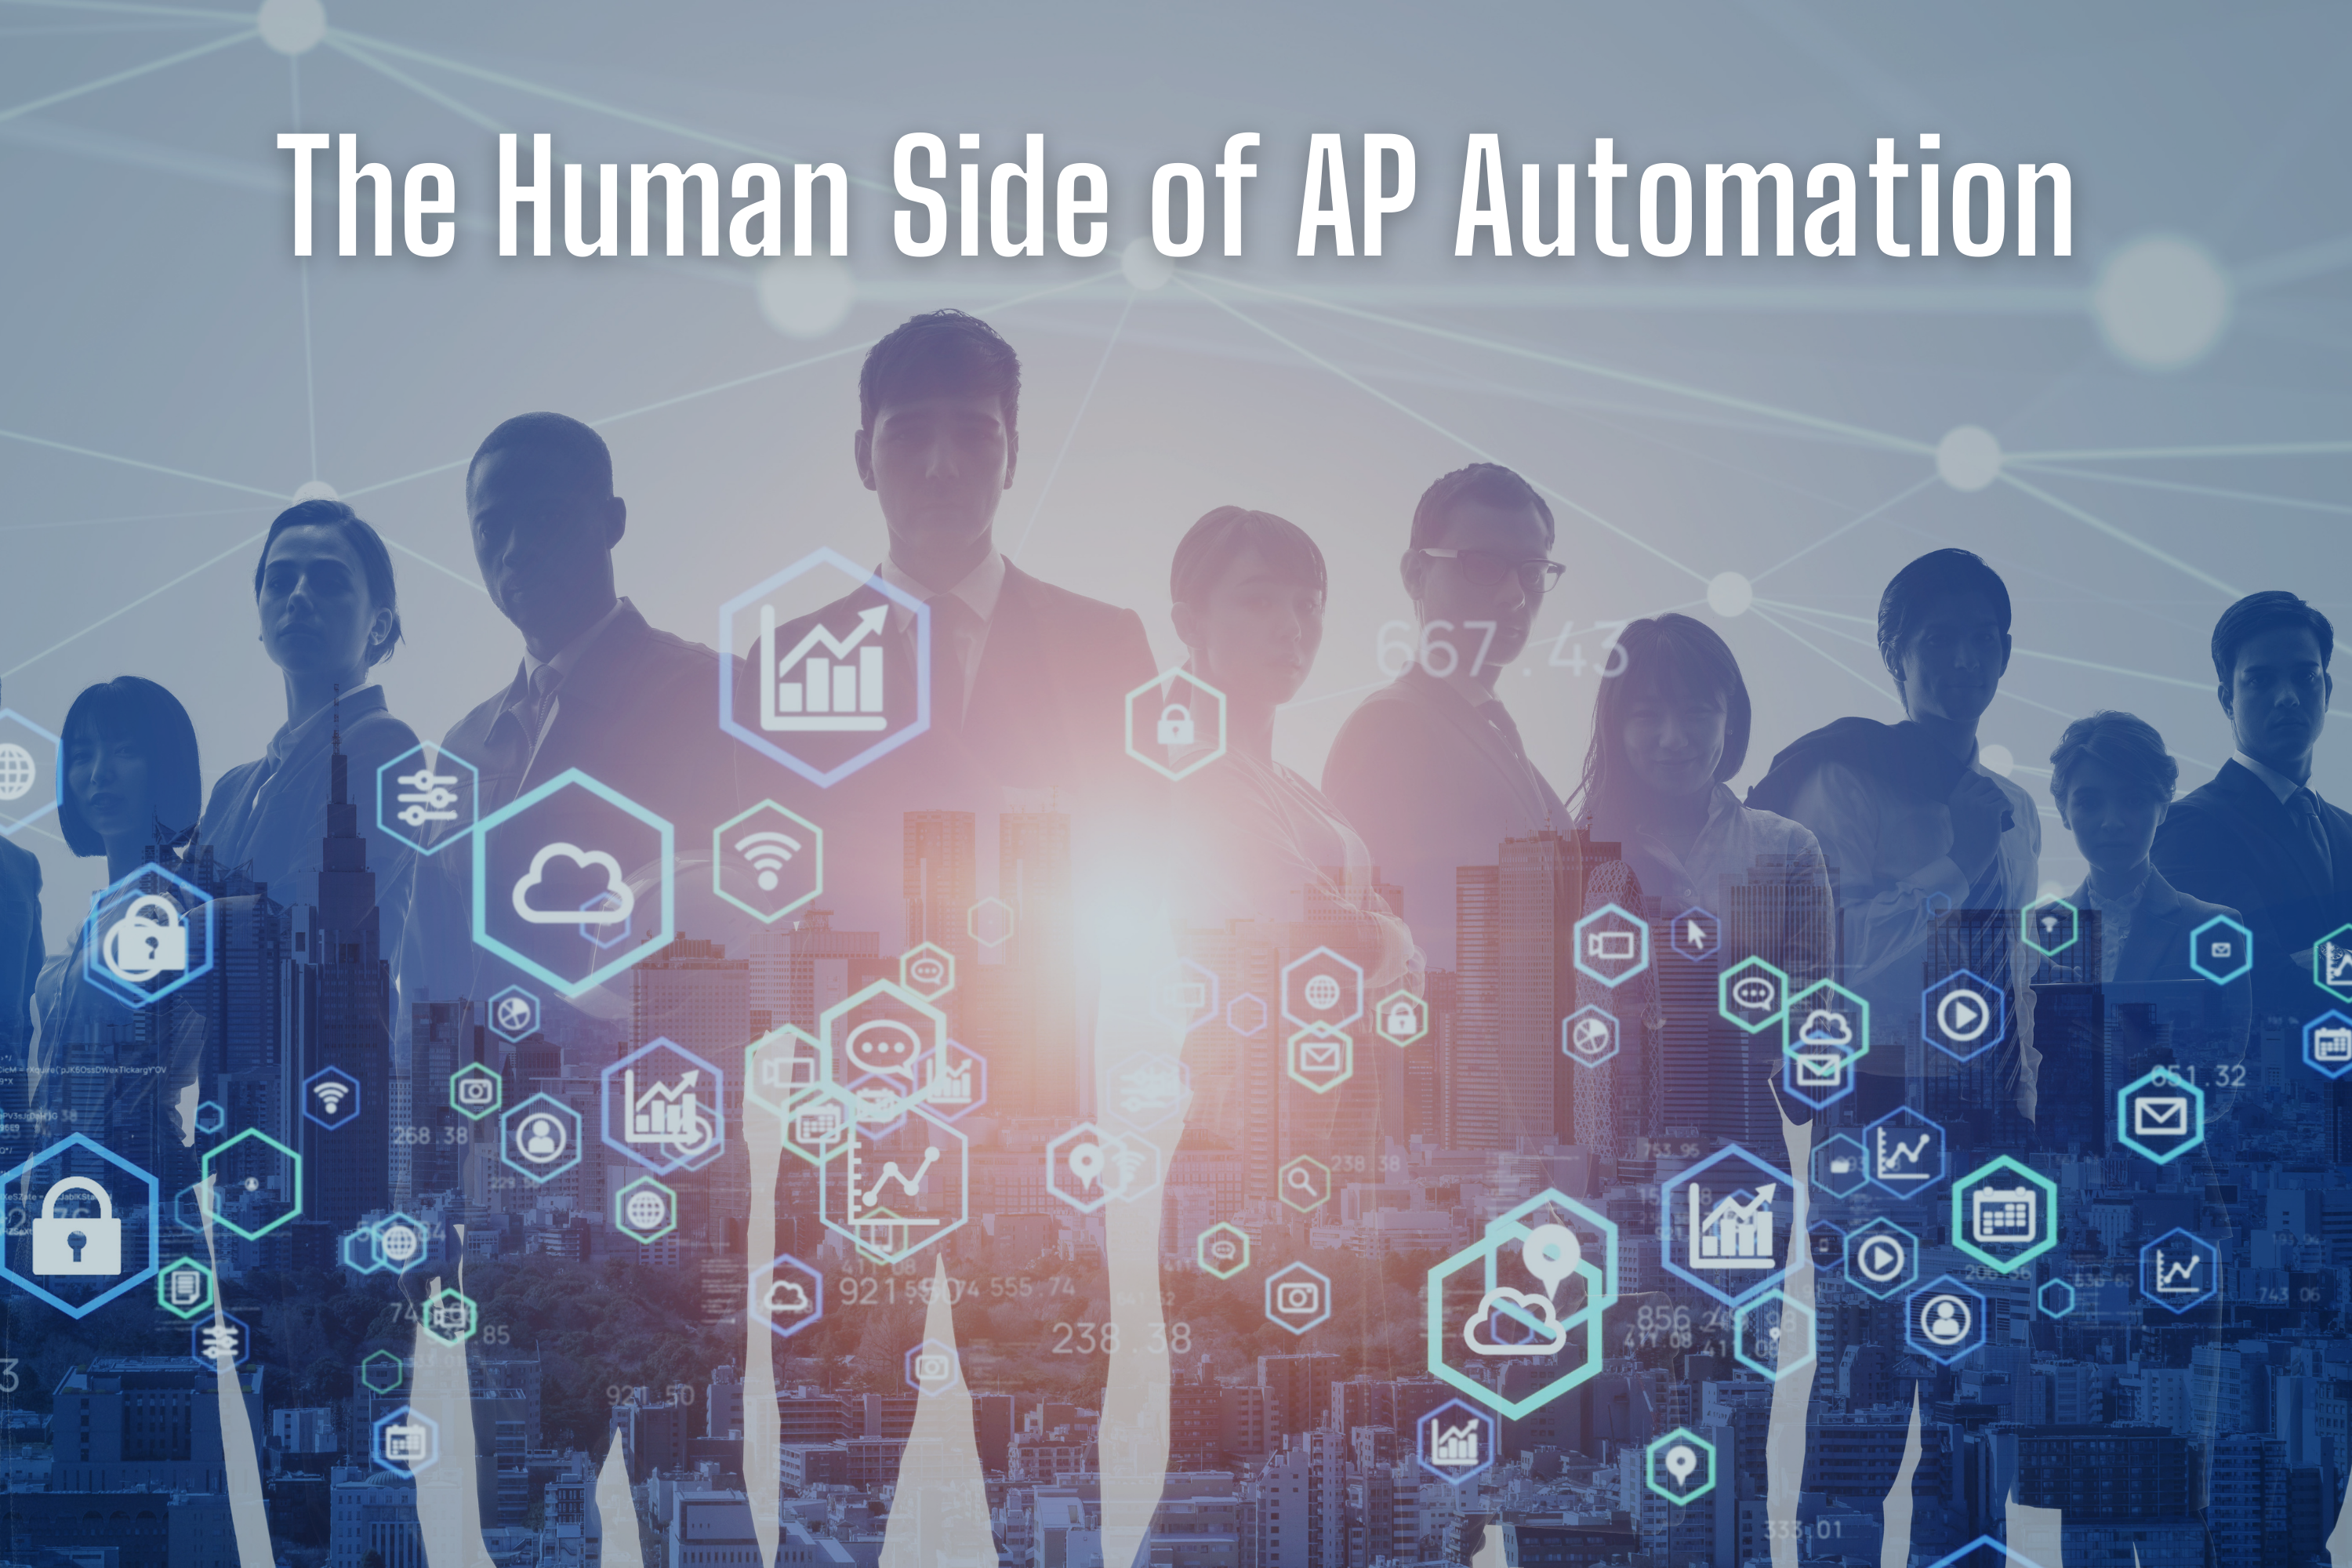 the-human-side-of-ap-automation-title-over-a-network-business-concept-human-businesspeople-digtial-transformation